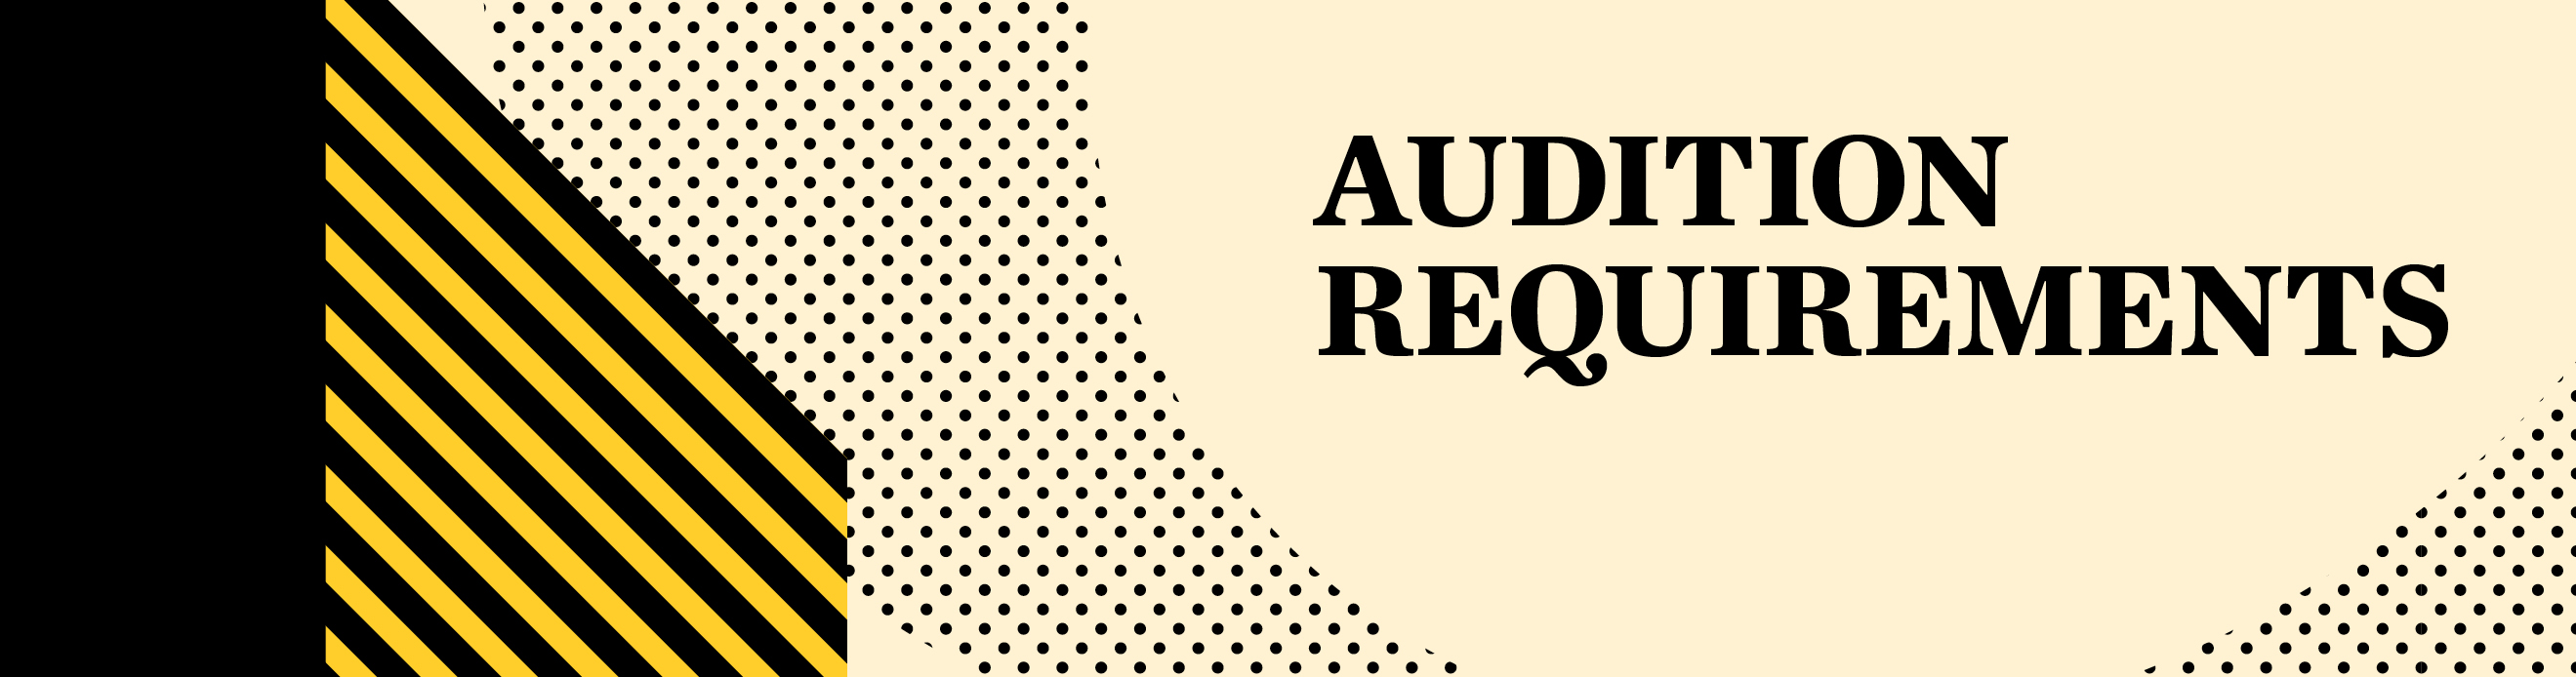 Audition requirements banner